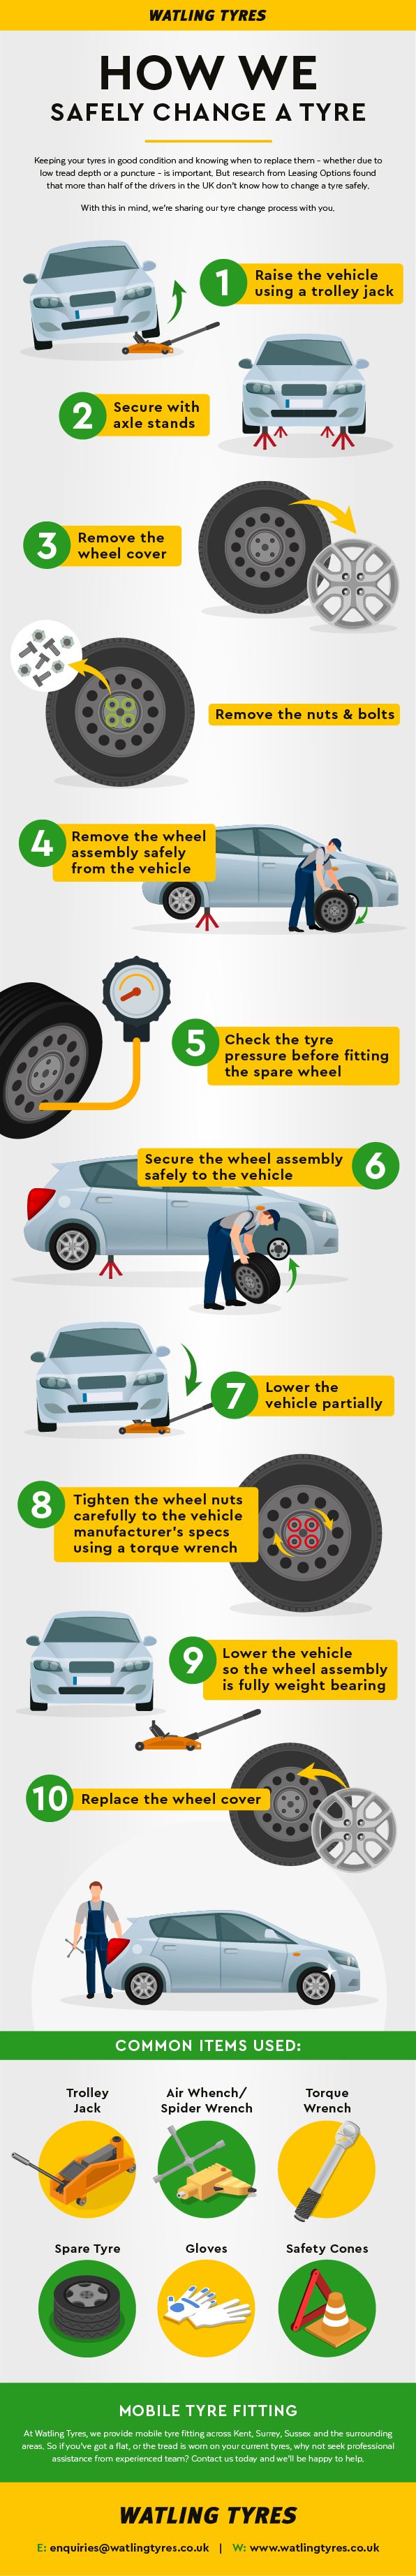 Change a Tyre Safely